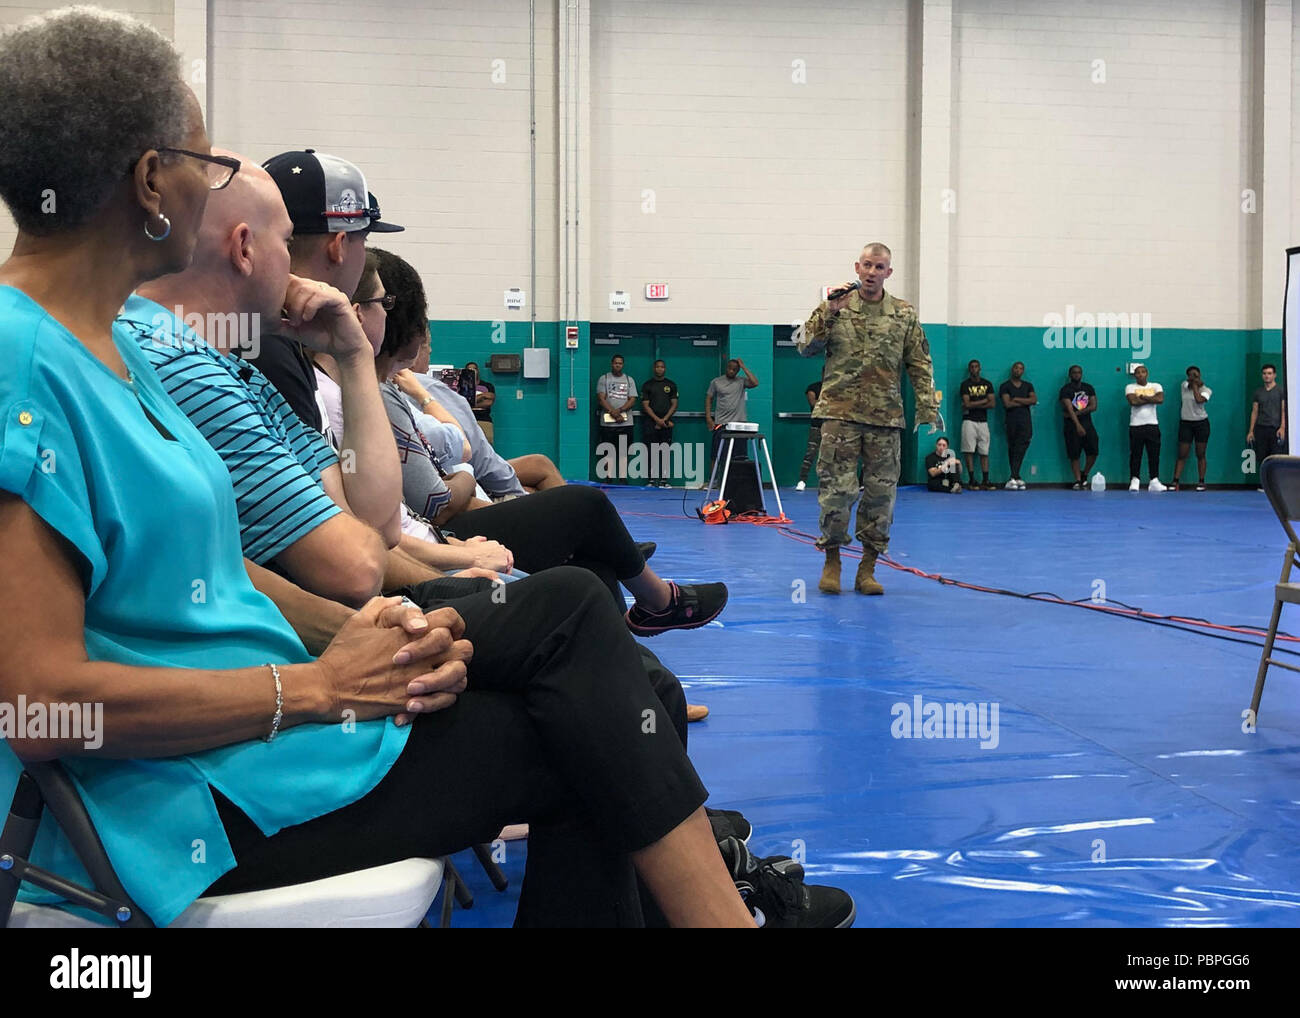 Army Ask Stock Photos & Army Ask Stock Images - Alamy